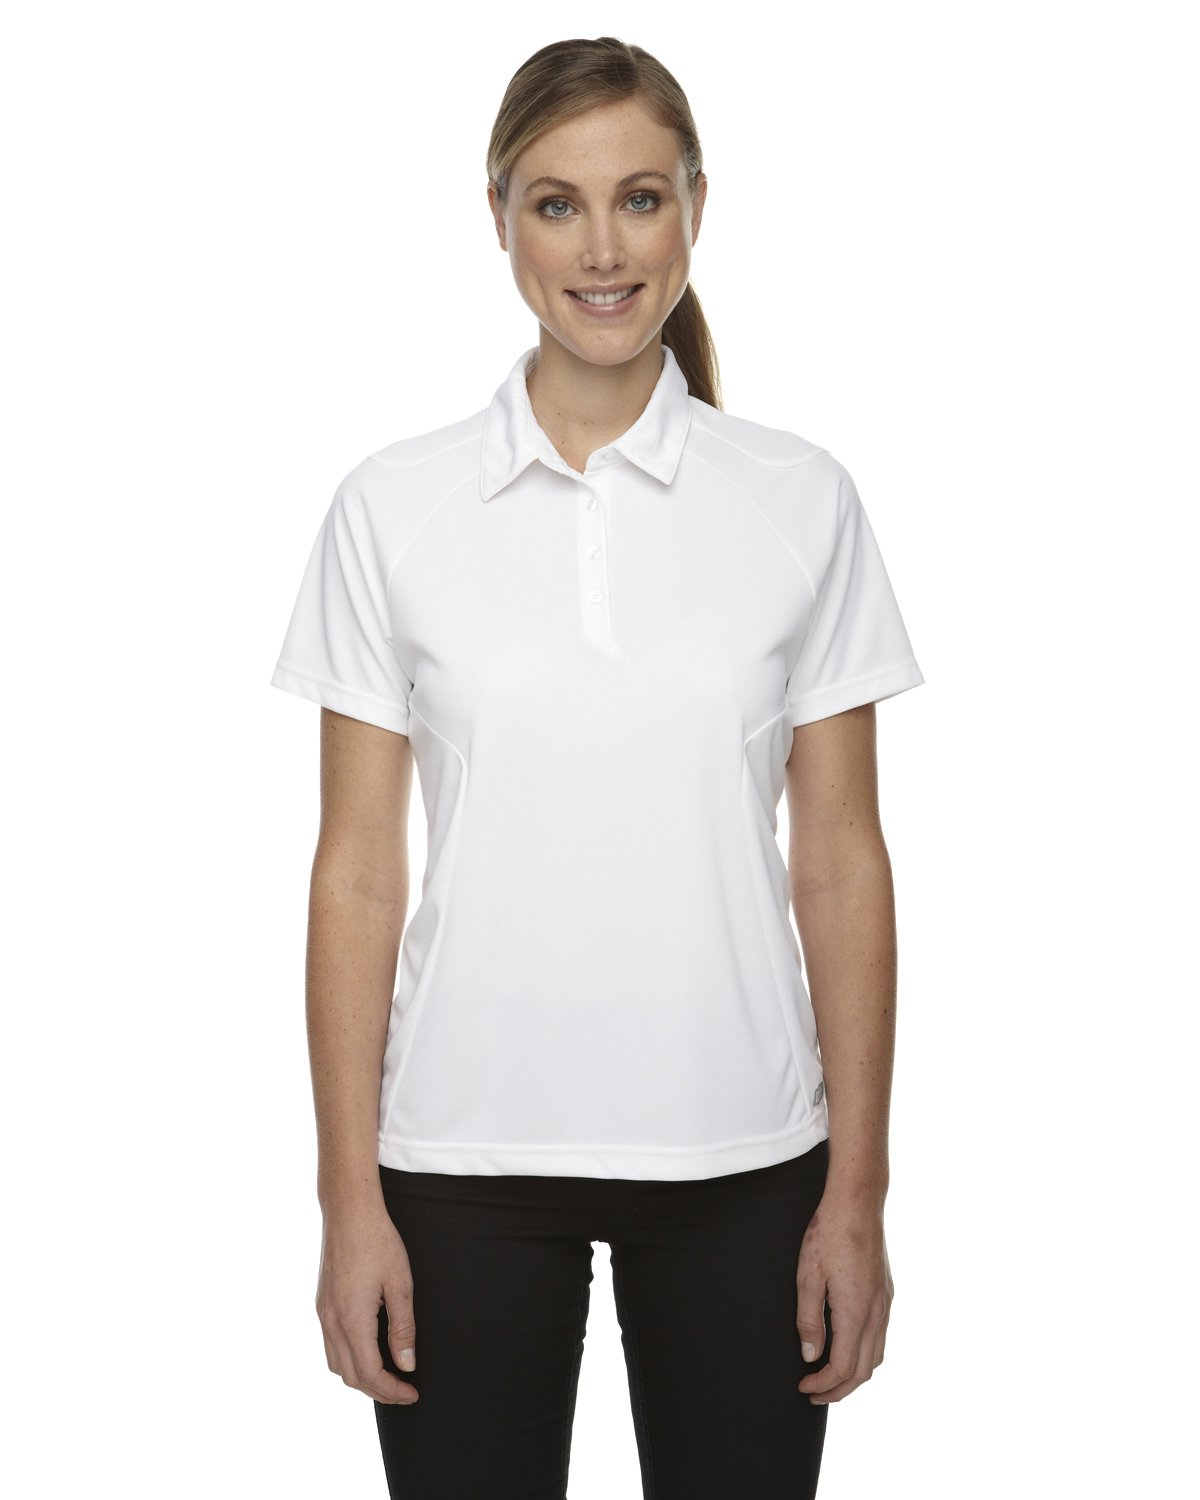 Ash City Womens Dolomite Performance Polo (Small, White) by Ash City Apparel